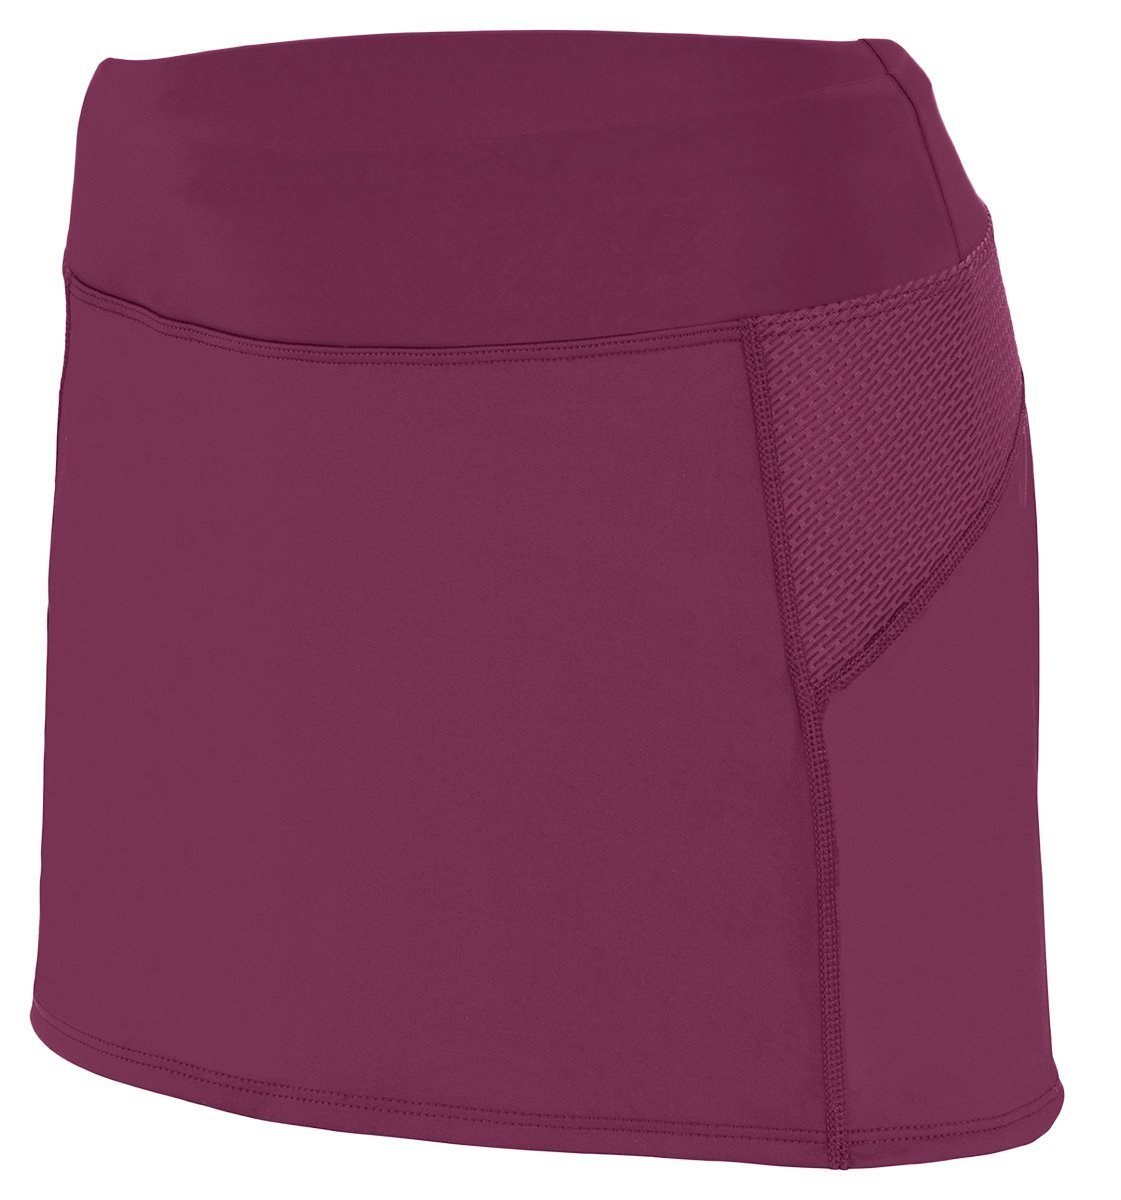 2420 AG LADIES FEMFIT SKORT MAROON/ GRAPHITE 2XL